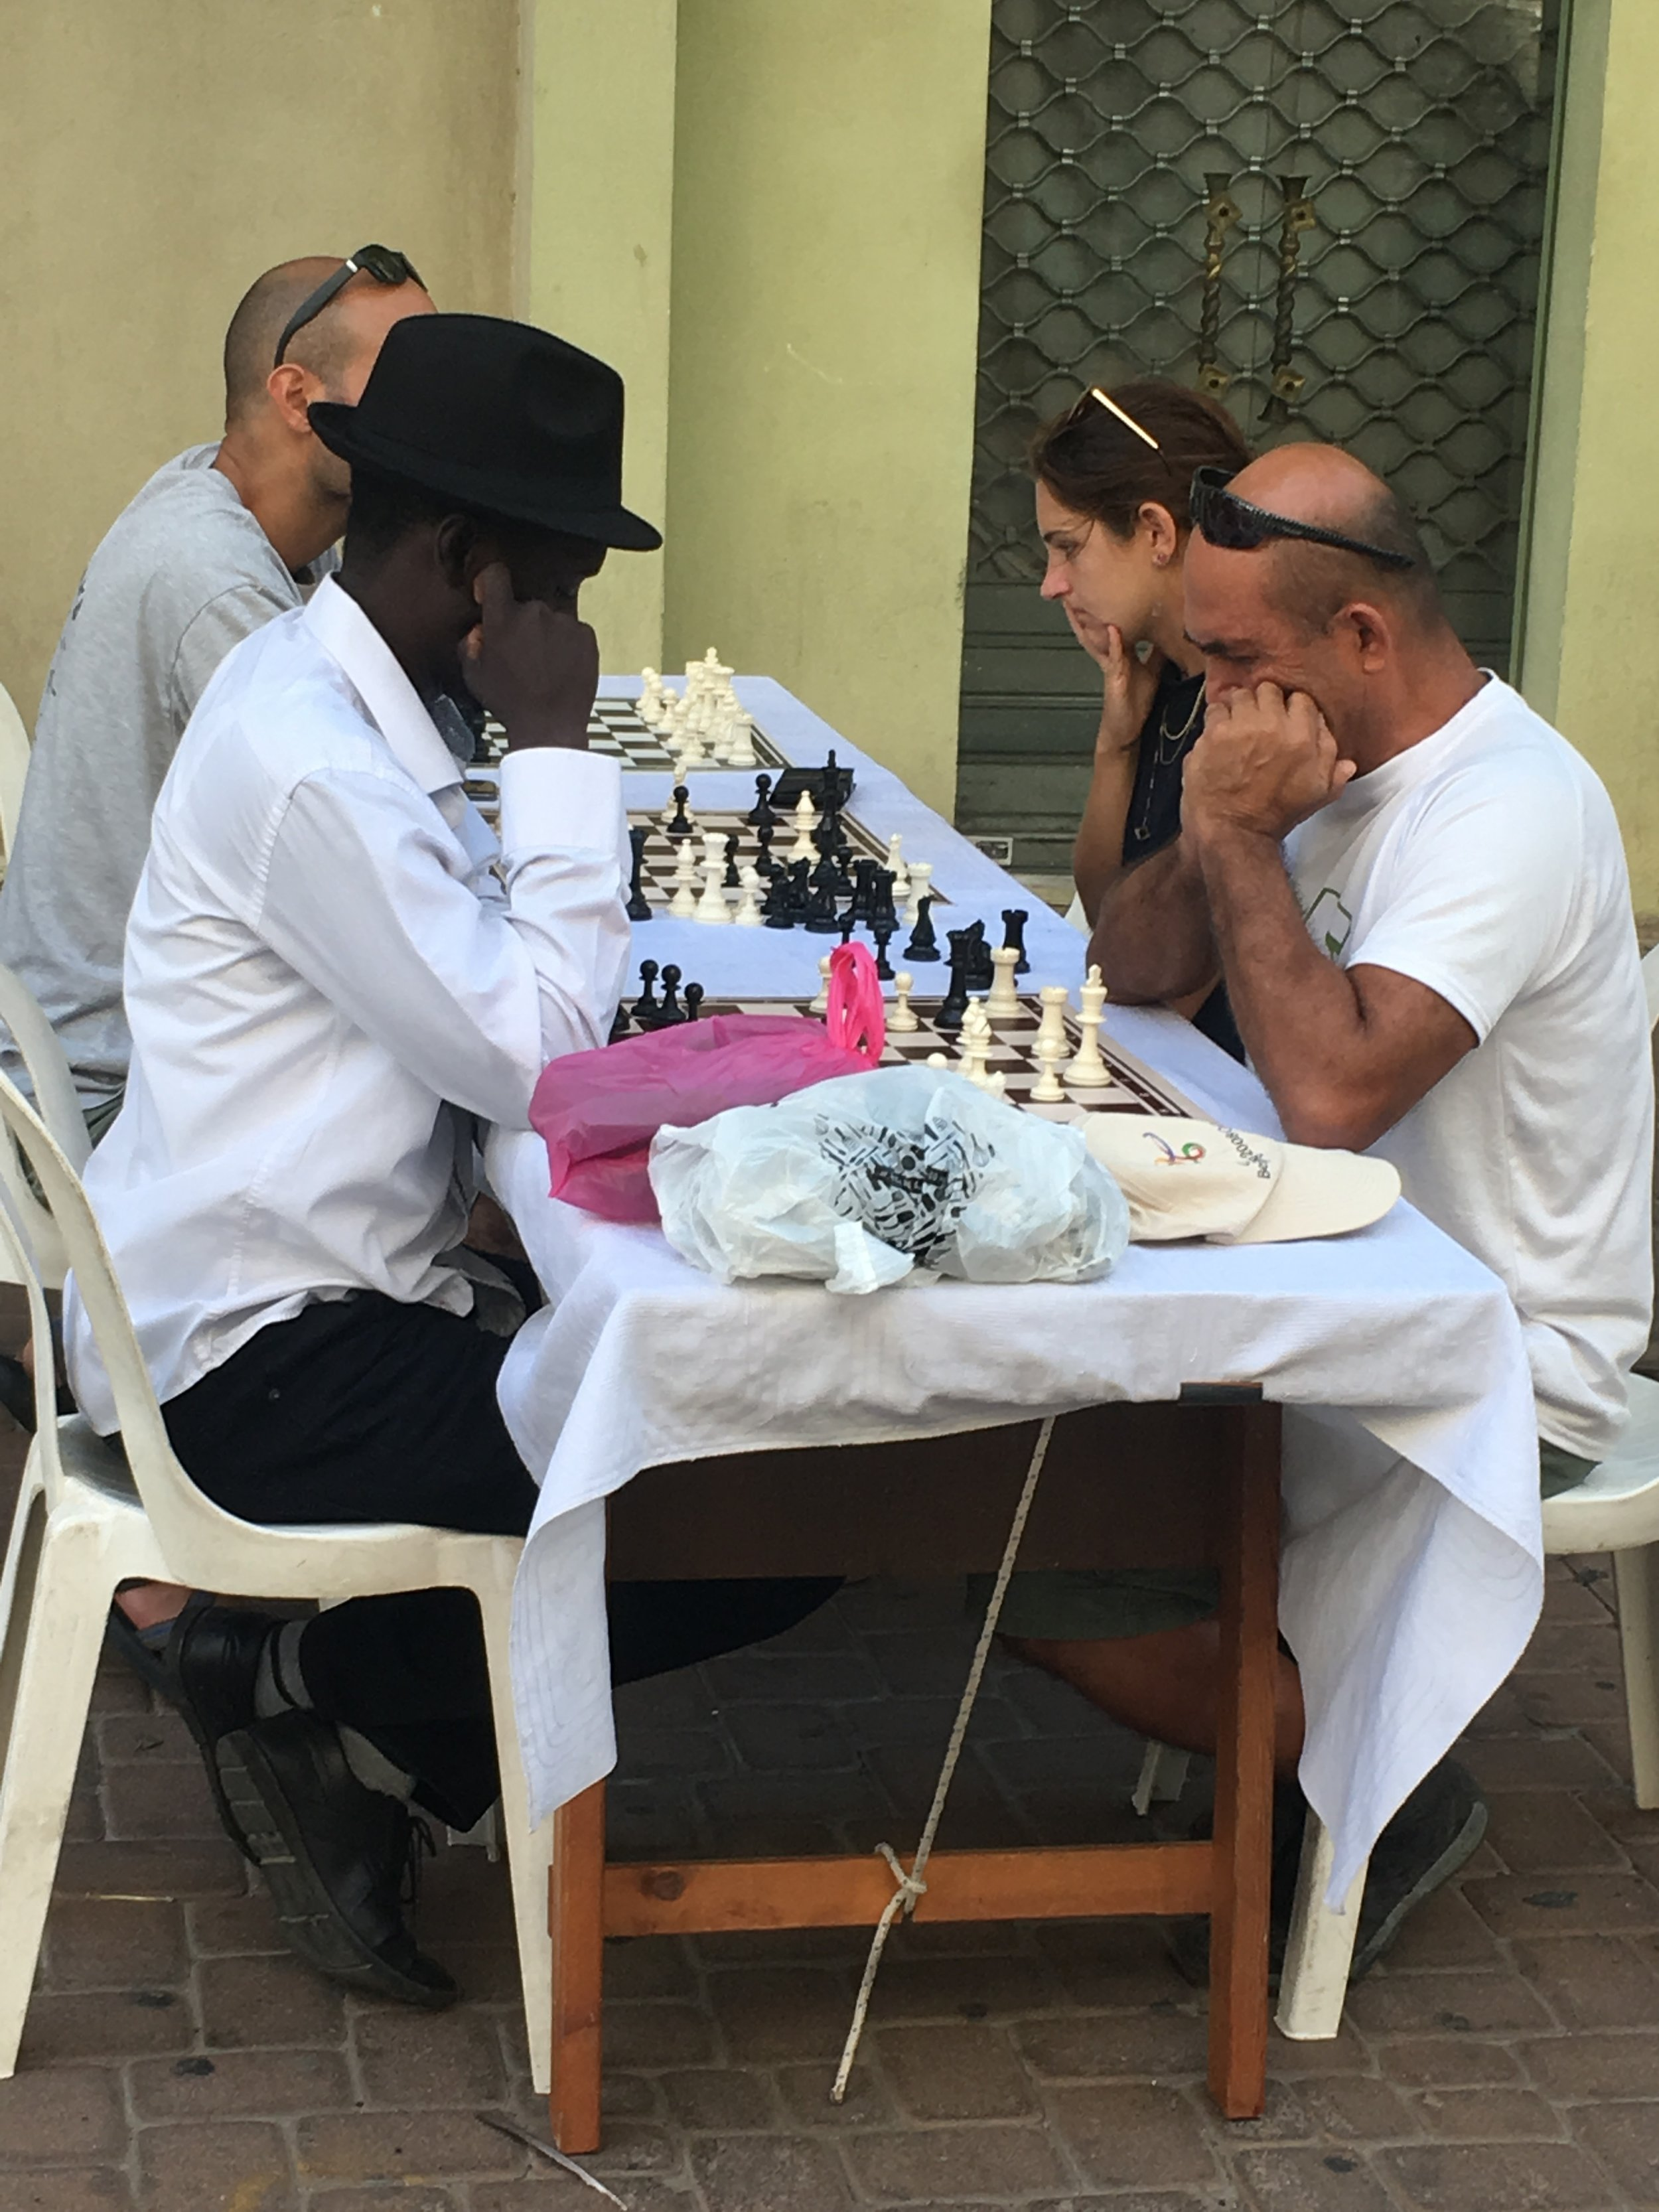 Your move. Chess players on the street in Tel Aviv.JPG